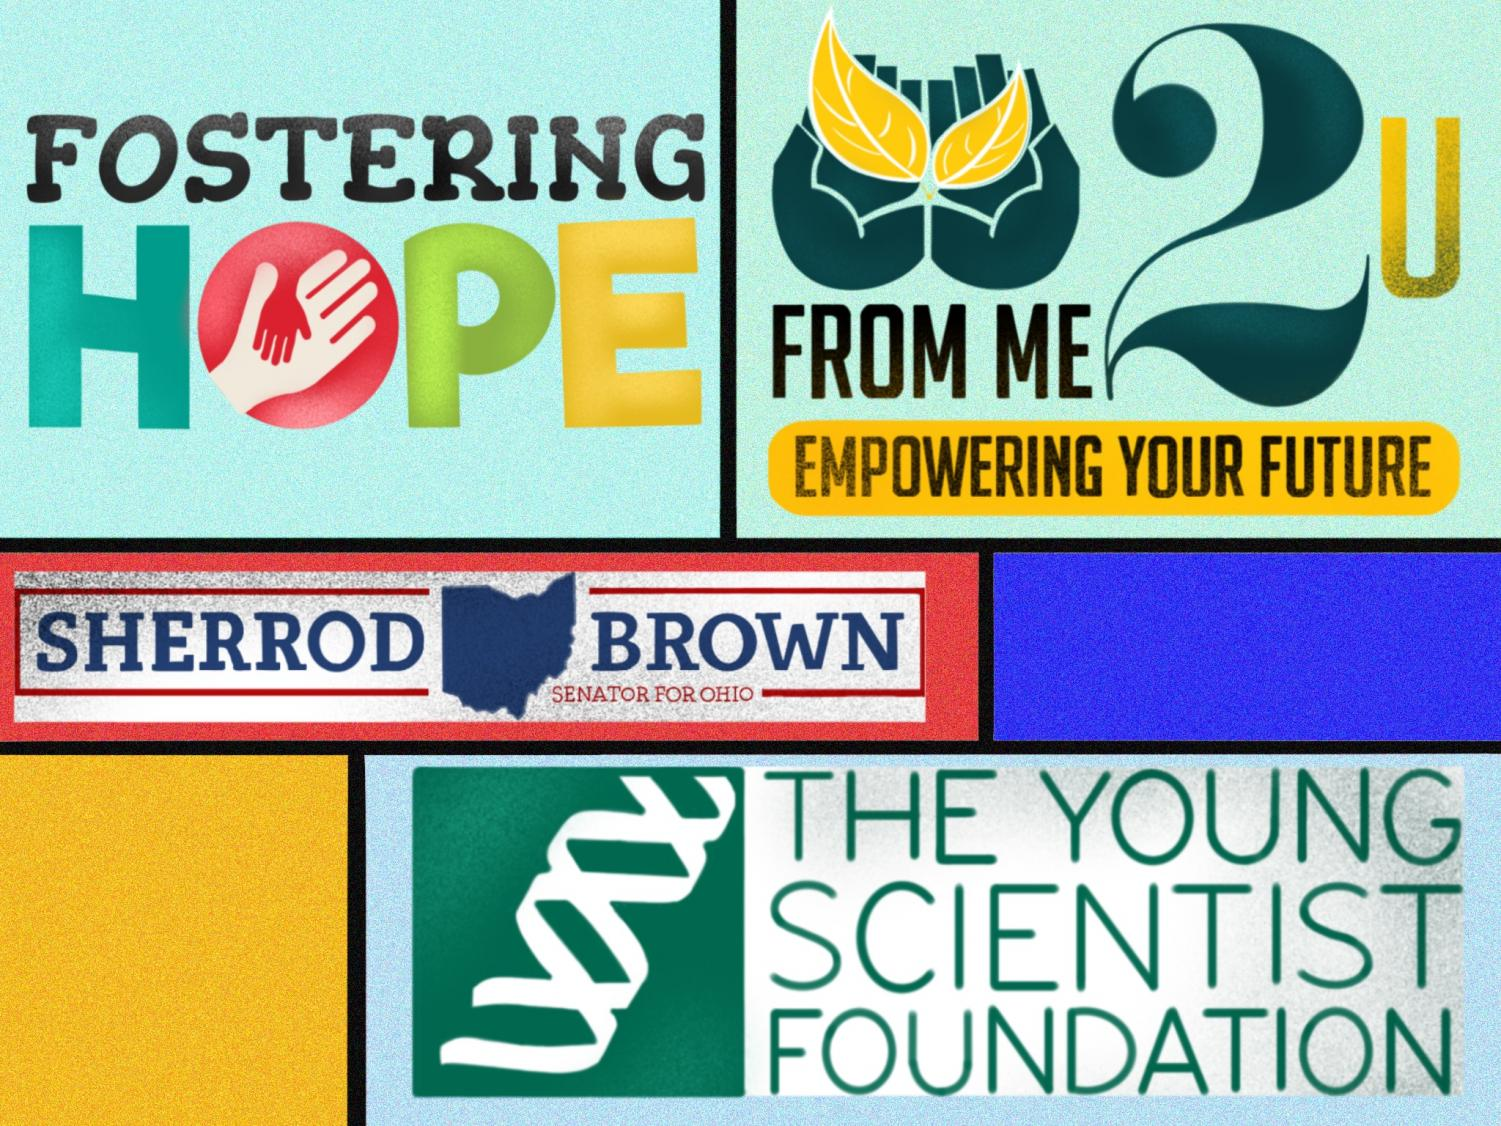 Dozens of internships are available around the Cleveland area, including Fostering Hope, the CAMHP Foundation, the Young Scientist Foundation, From Me 2 U, and with the Sherrod Brown campaign.